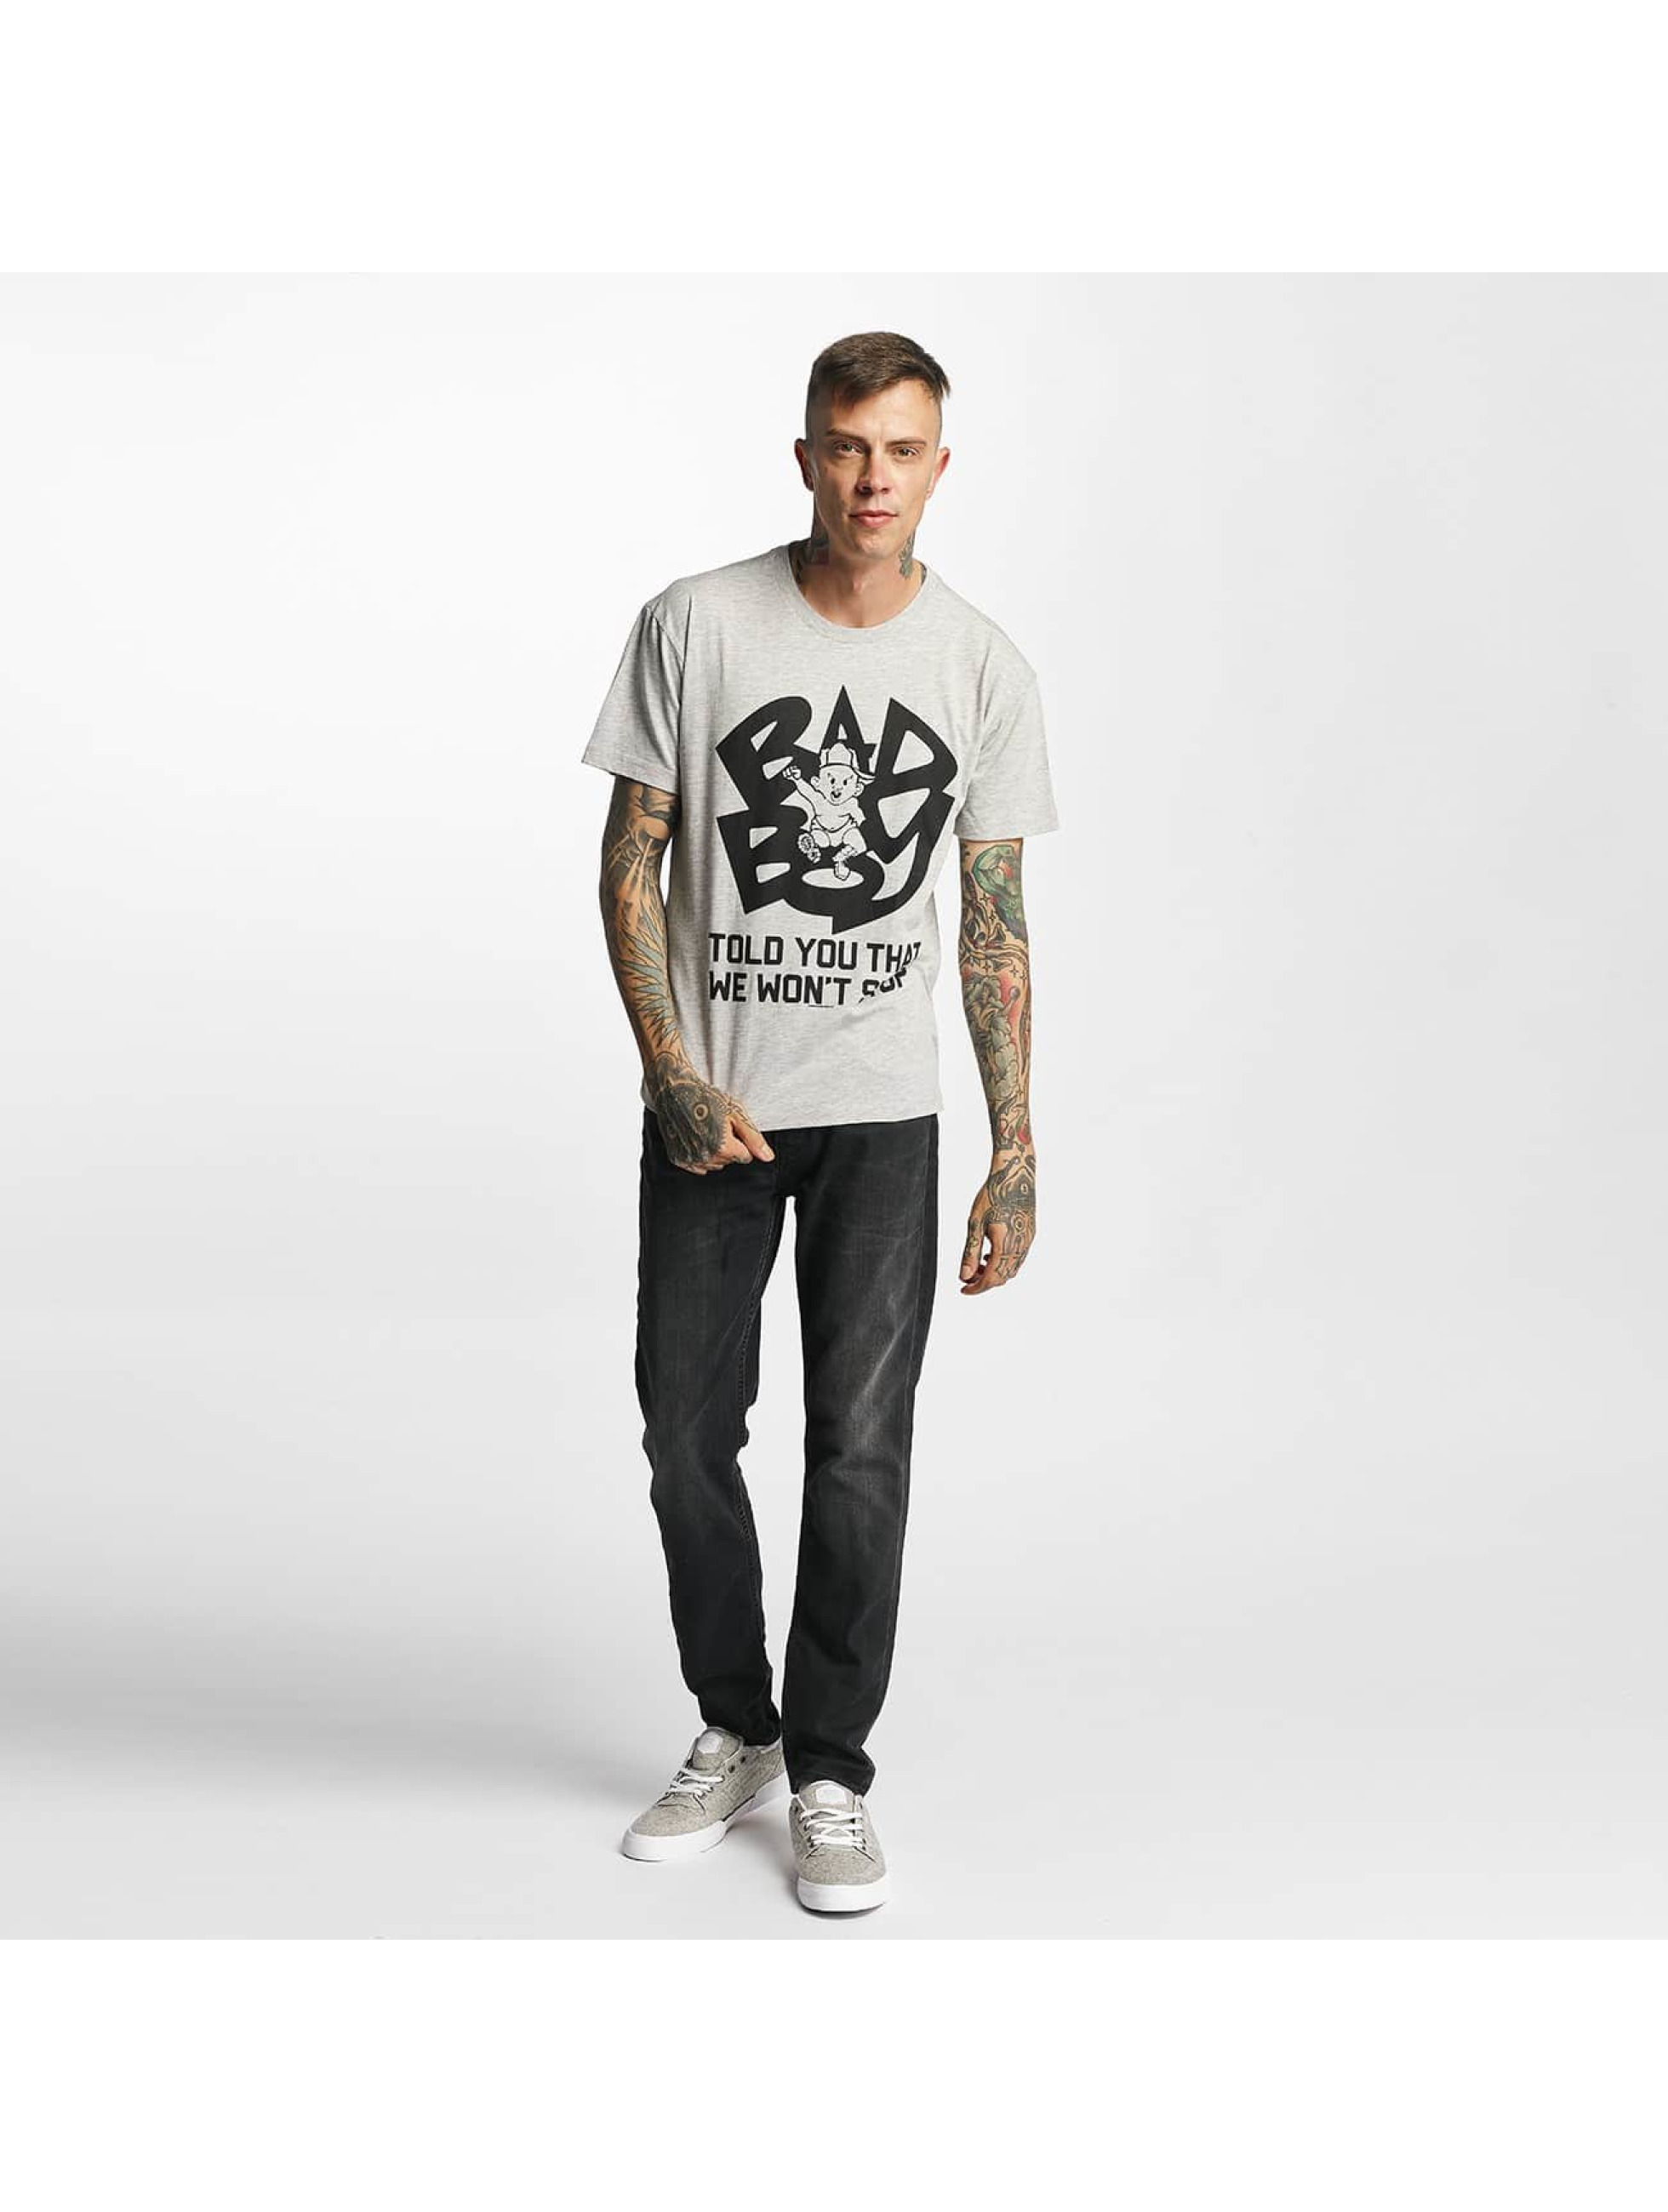 Amplified T-Shirt Bad Boy - Told You That We Wont Stop grey